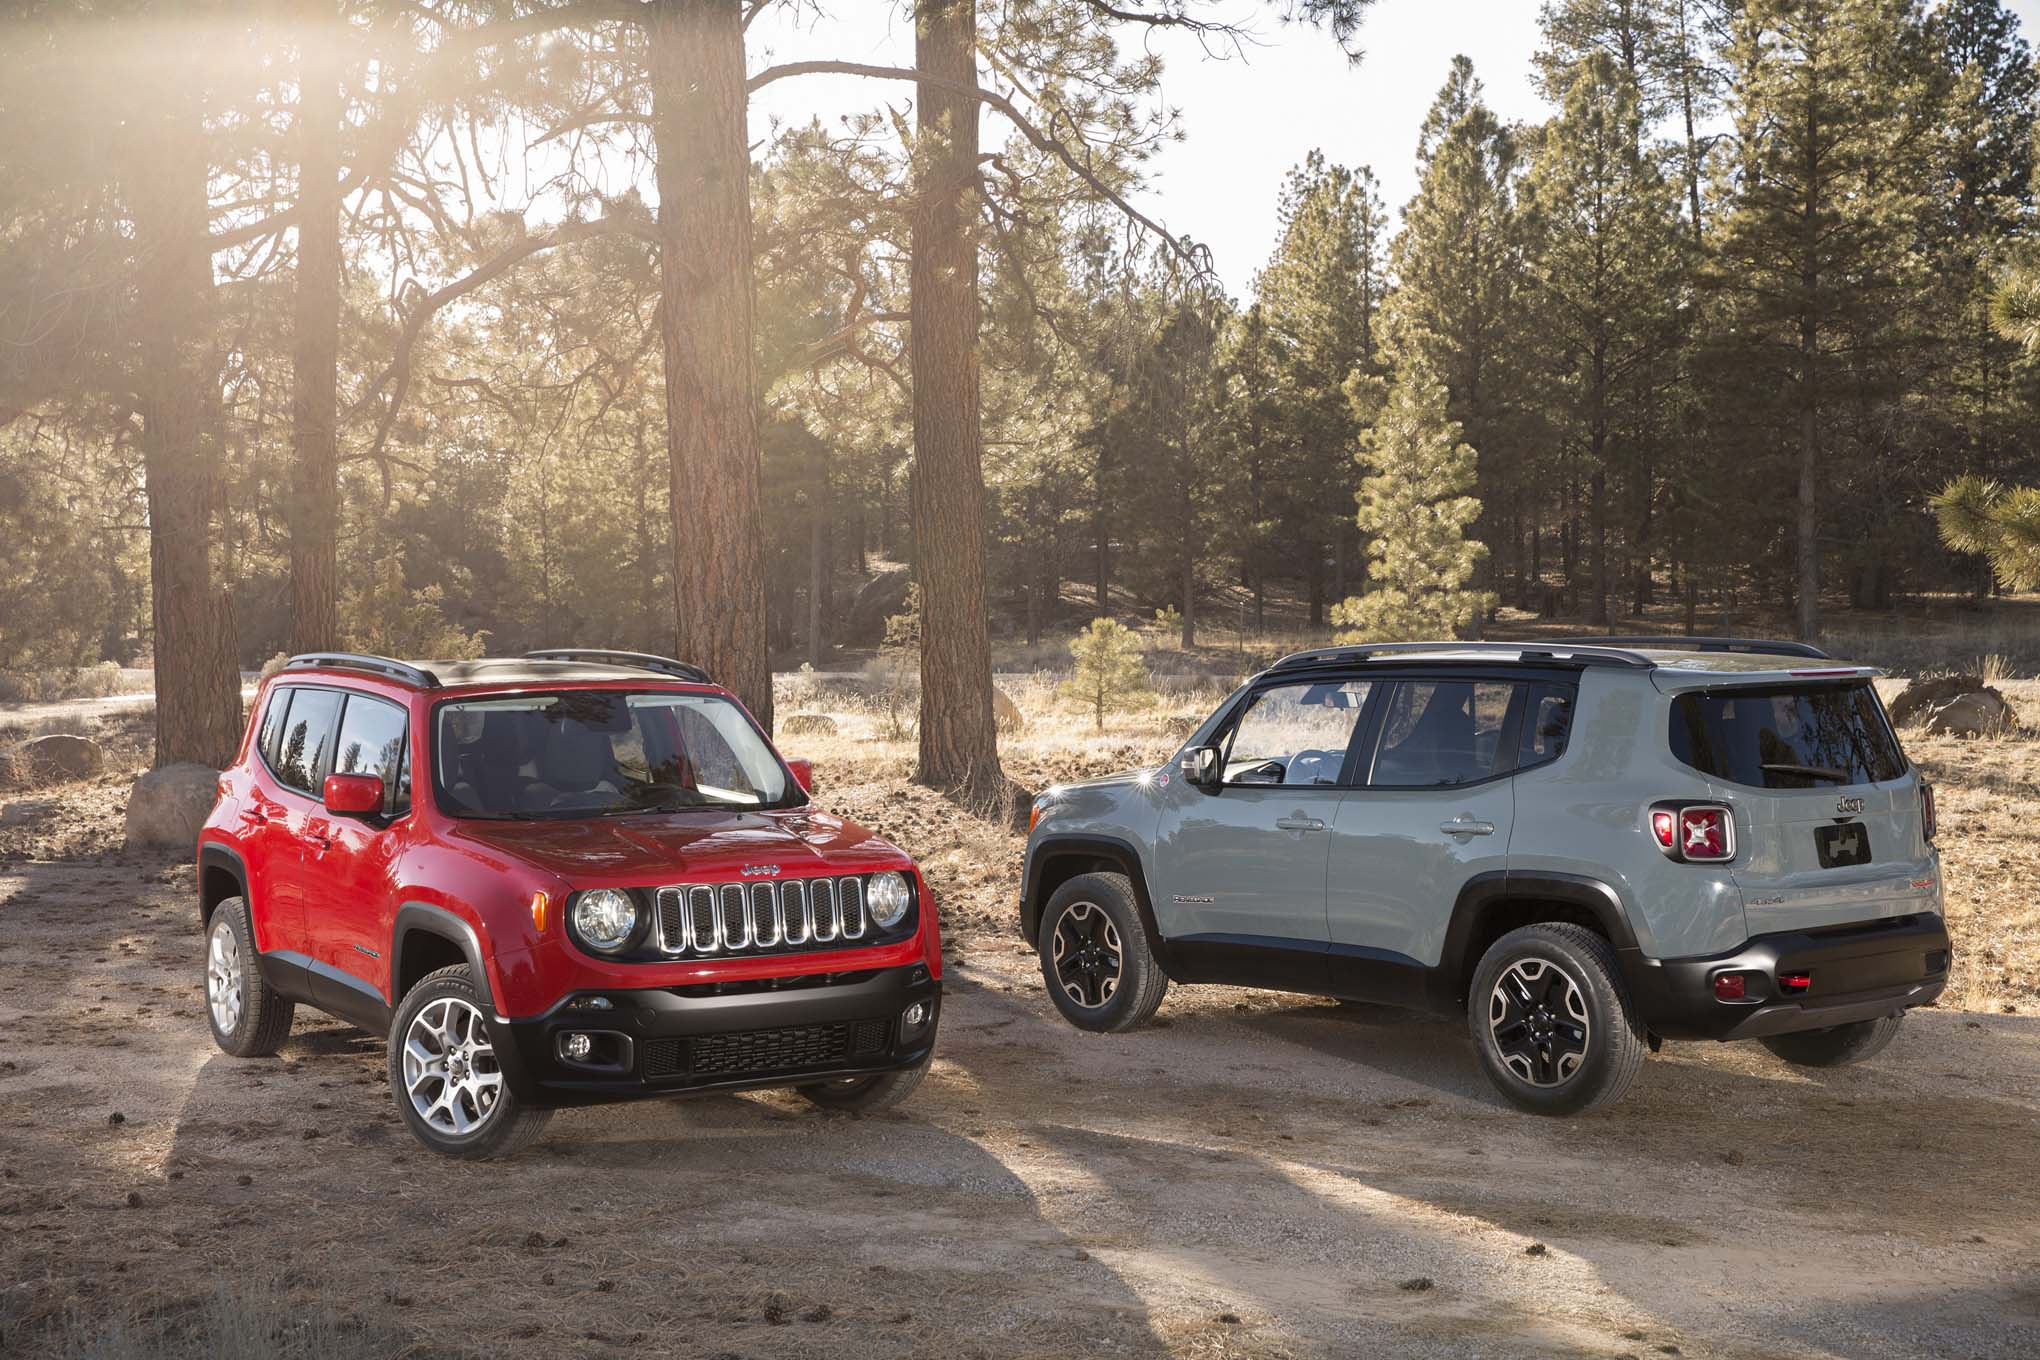 2015 Jeep Renegade Trailhawk 2015 Jeep Renegade latitude front rear three quarter